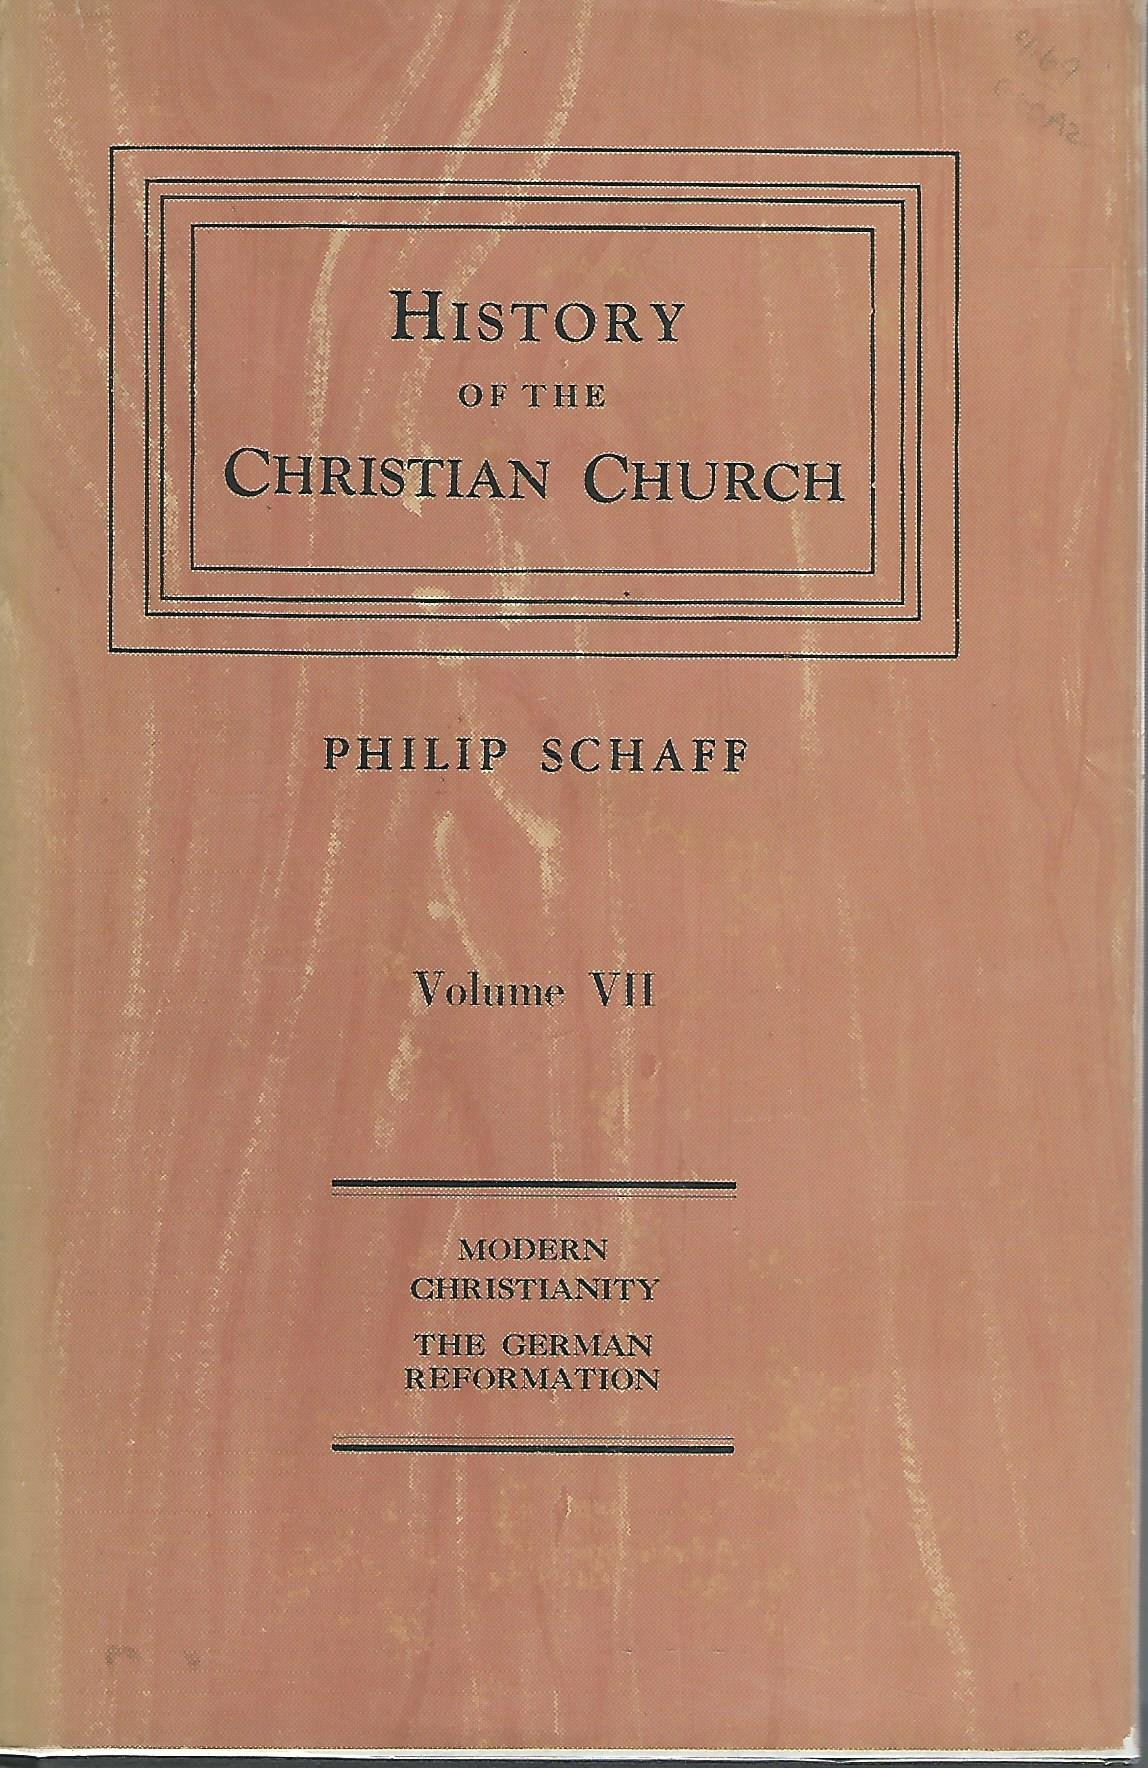 History of the Christian Church, Volume VII. Modern Christianity. The German Reformation.